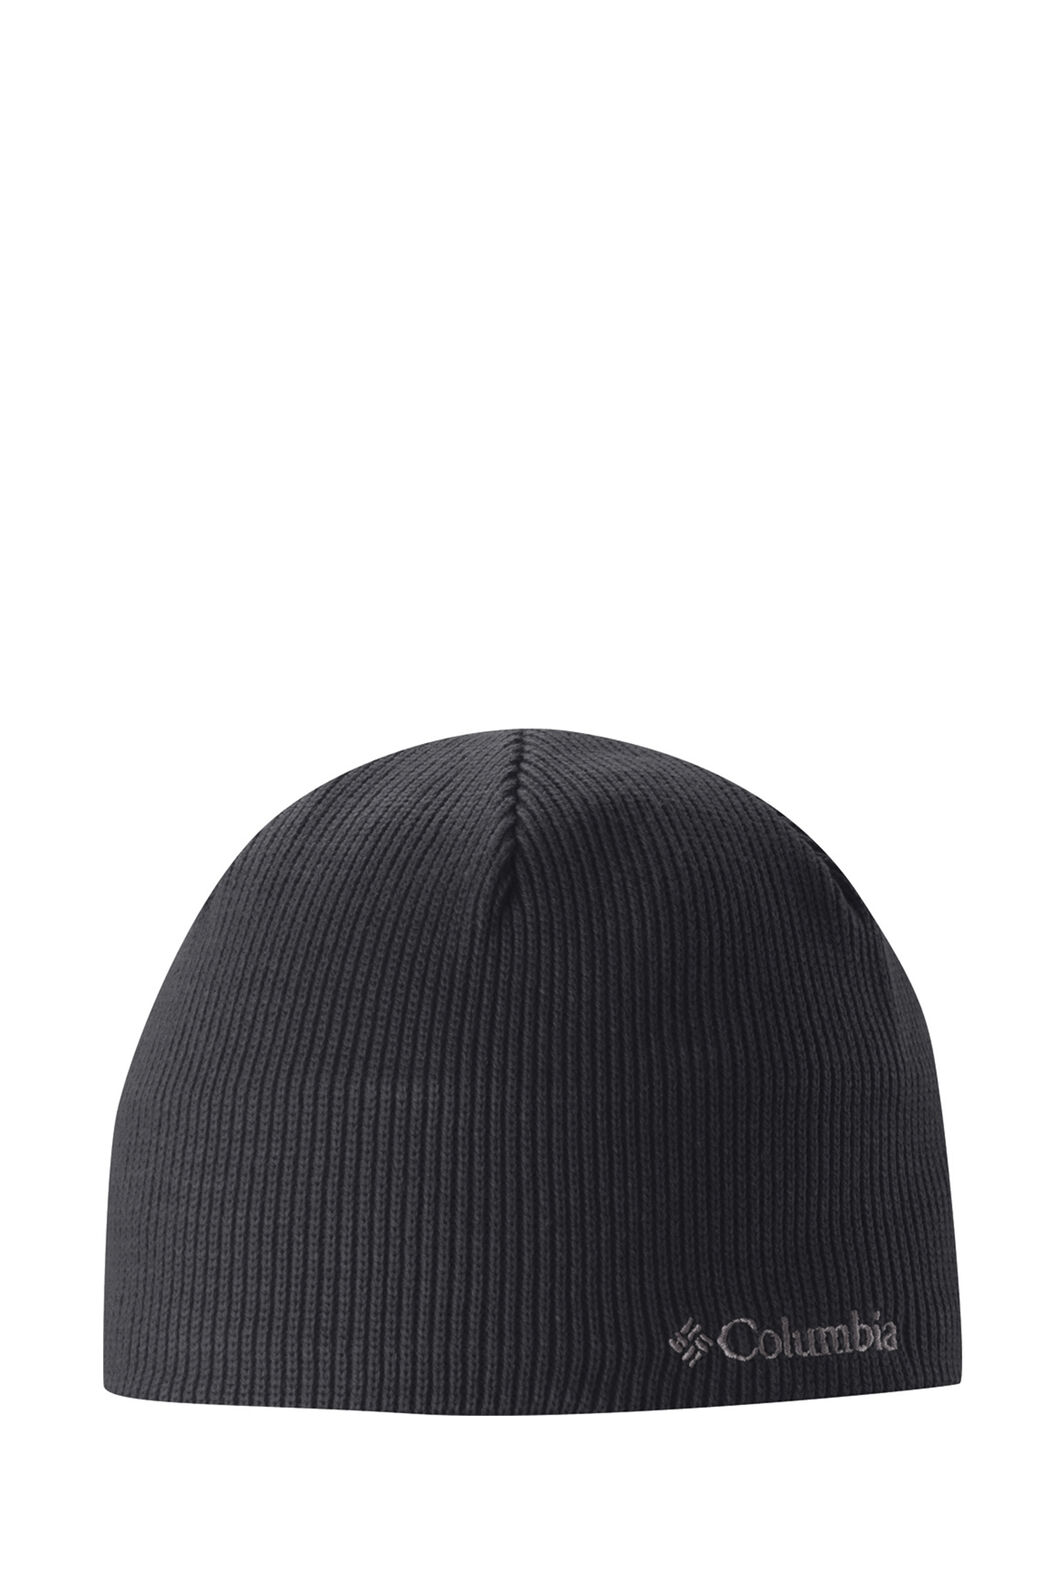 Columbia Men's Bugaboo Beanie  One Size Fits Most, Black, hi-res